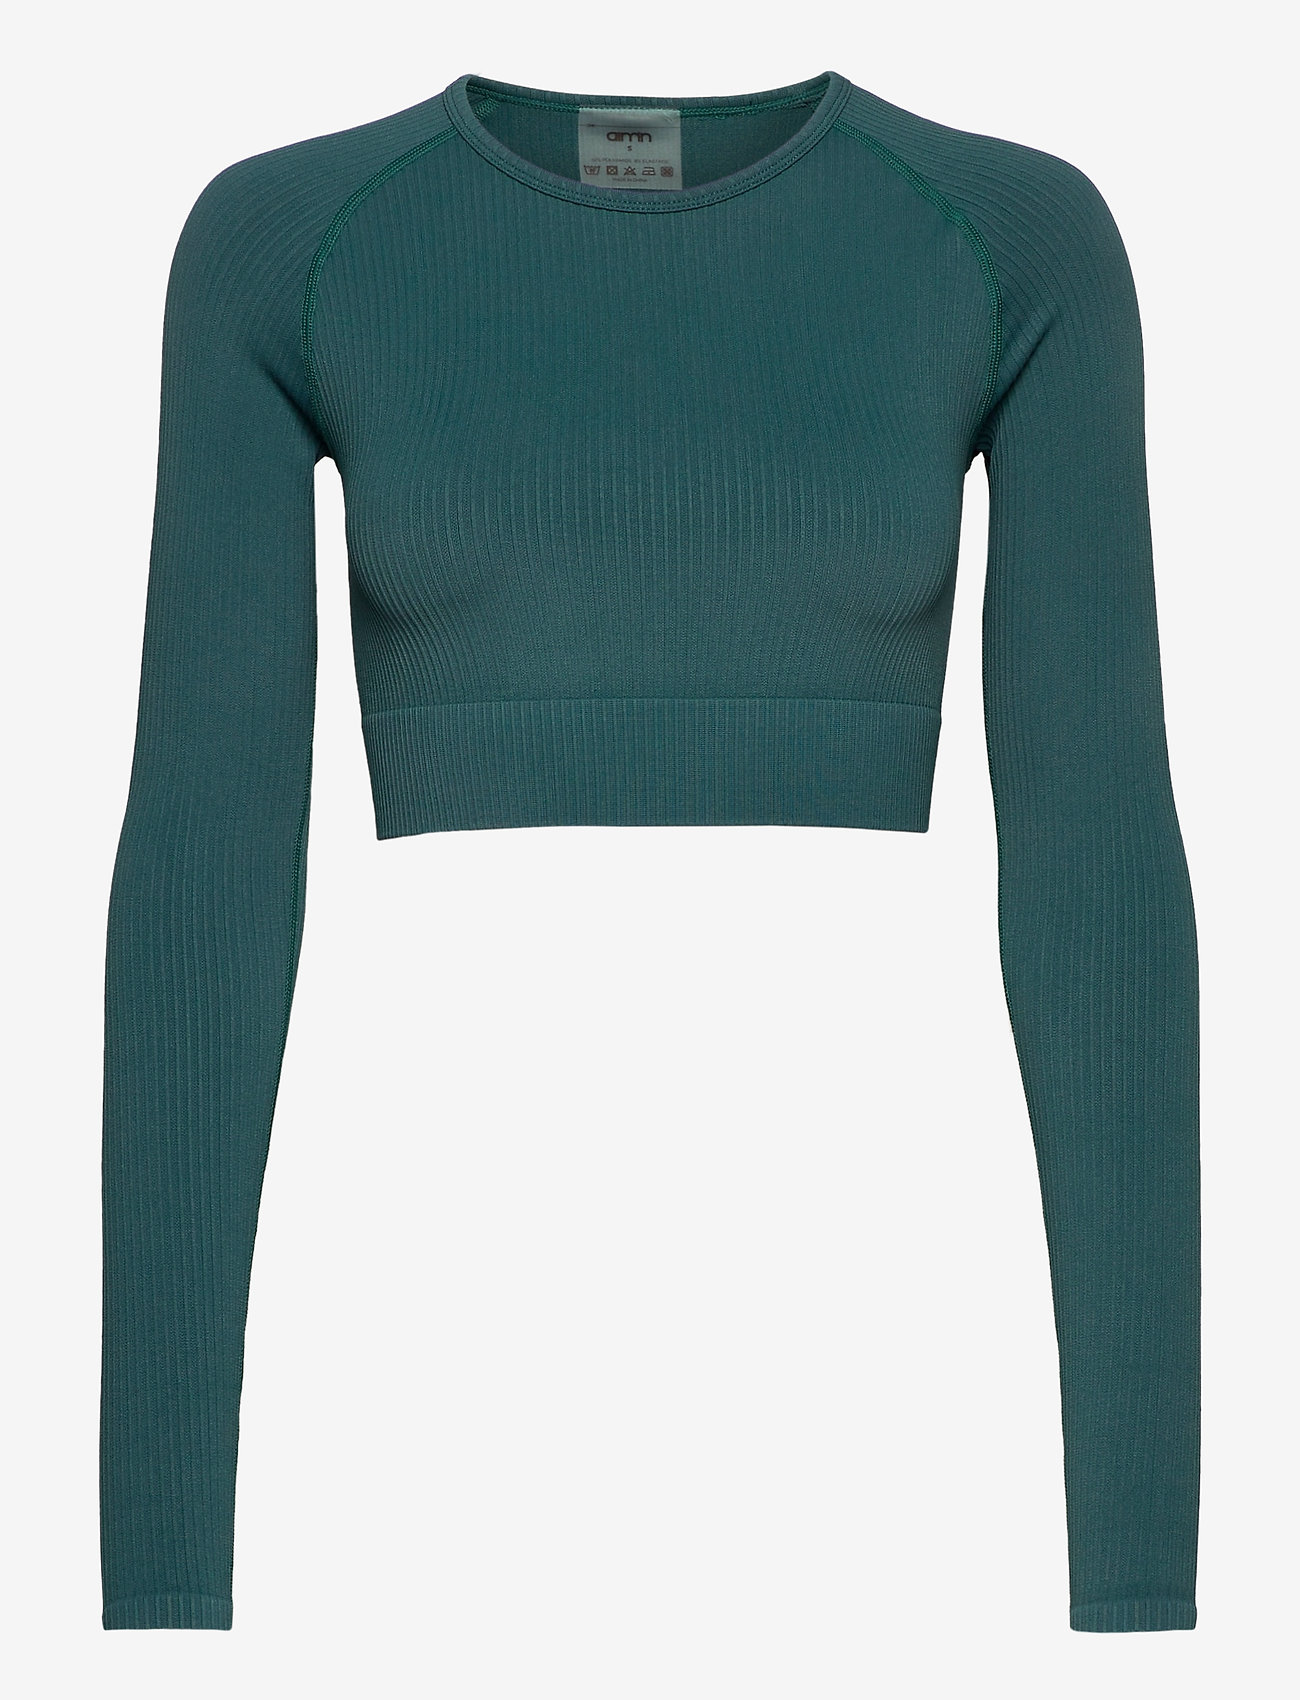 AIM'N - Hydro Ribbed Seamless Crop Long Sleeve - topjes met lange mouwen - hydro - 1